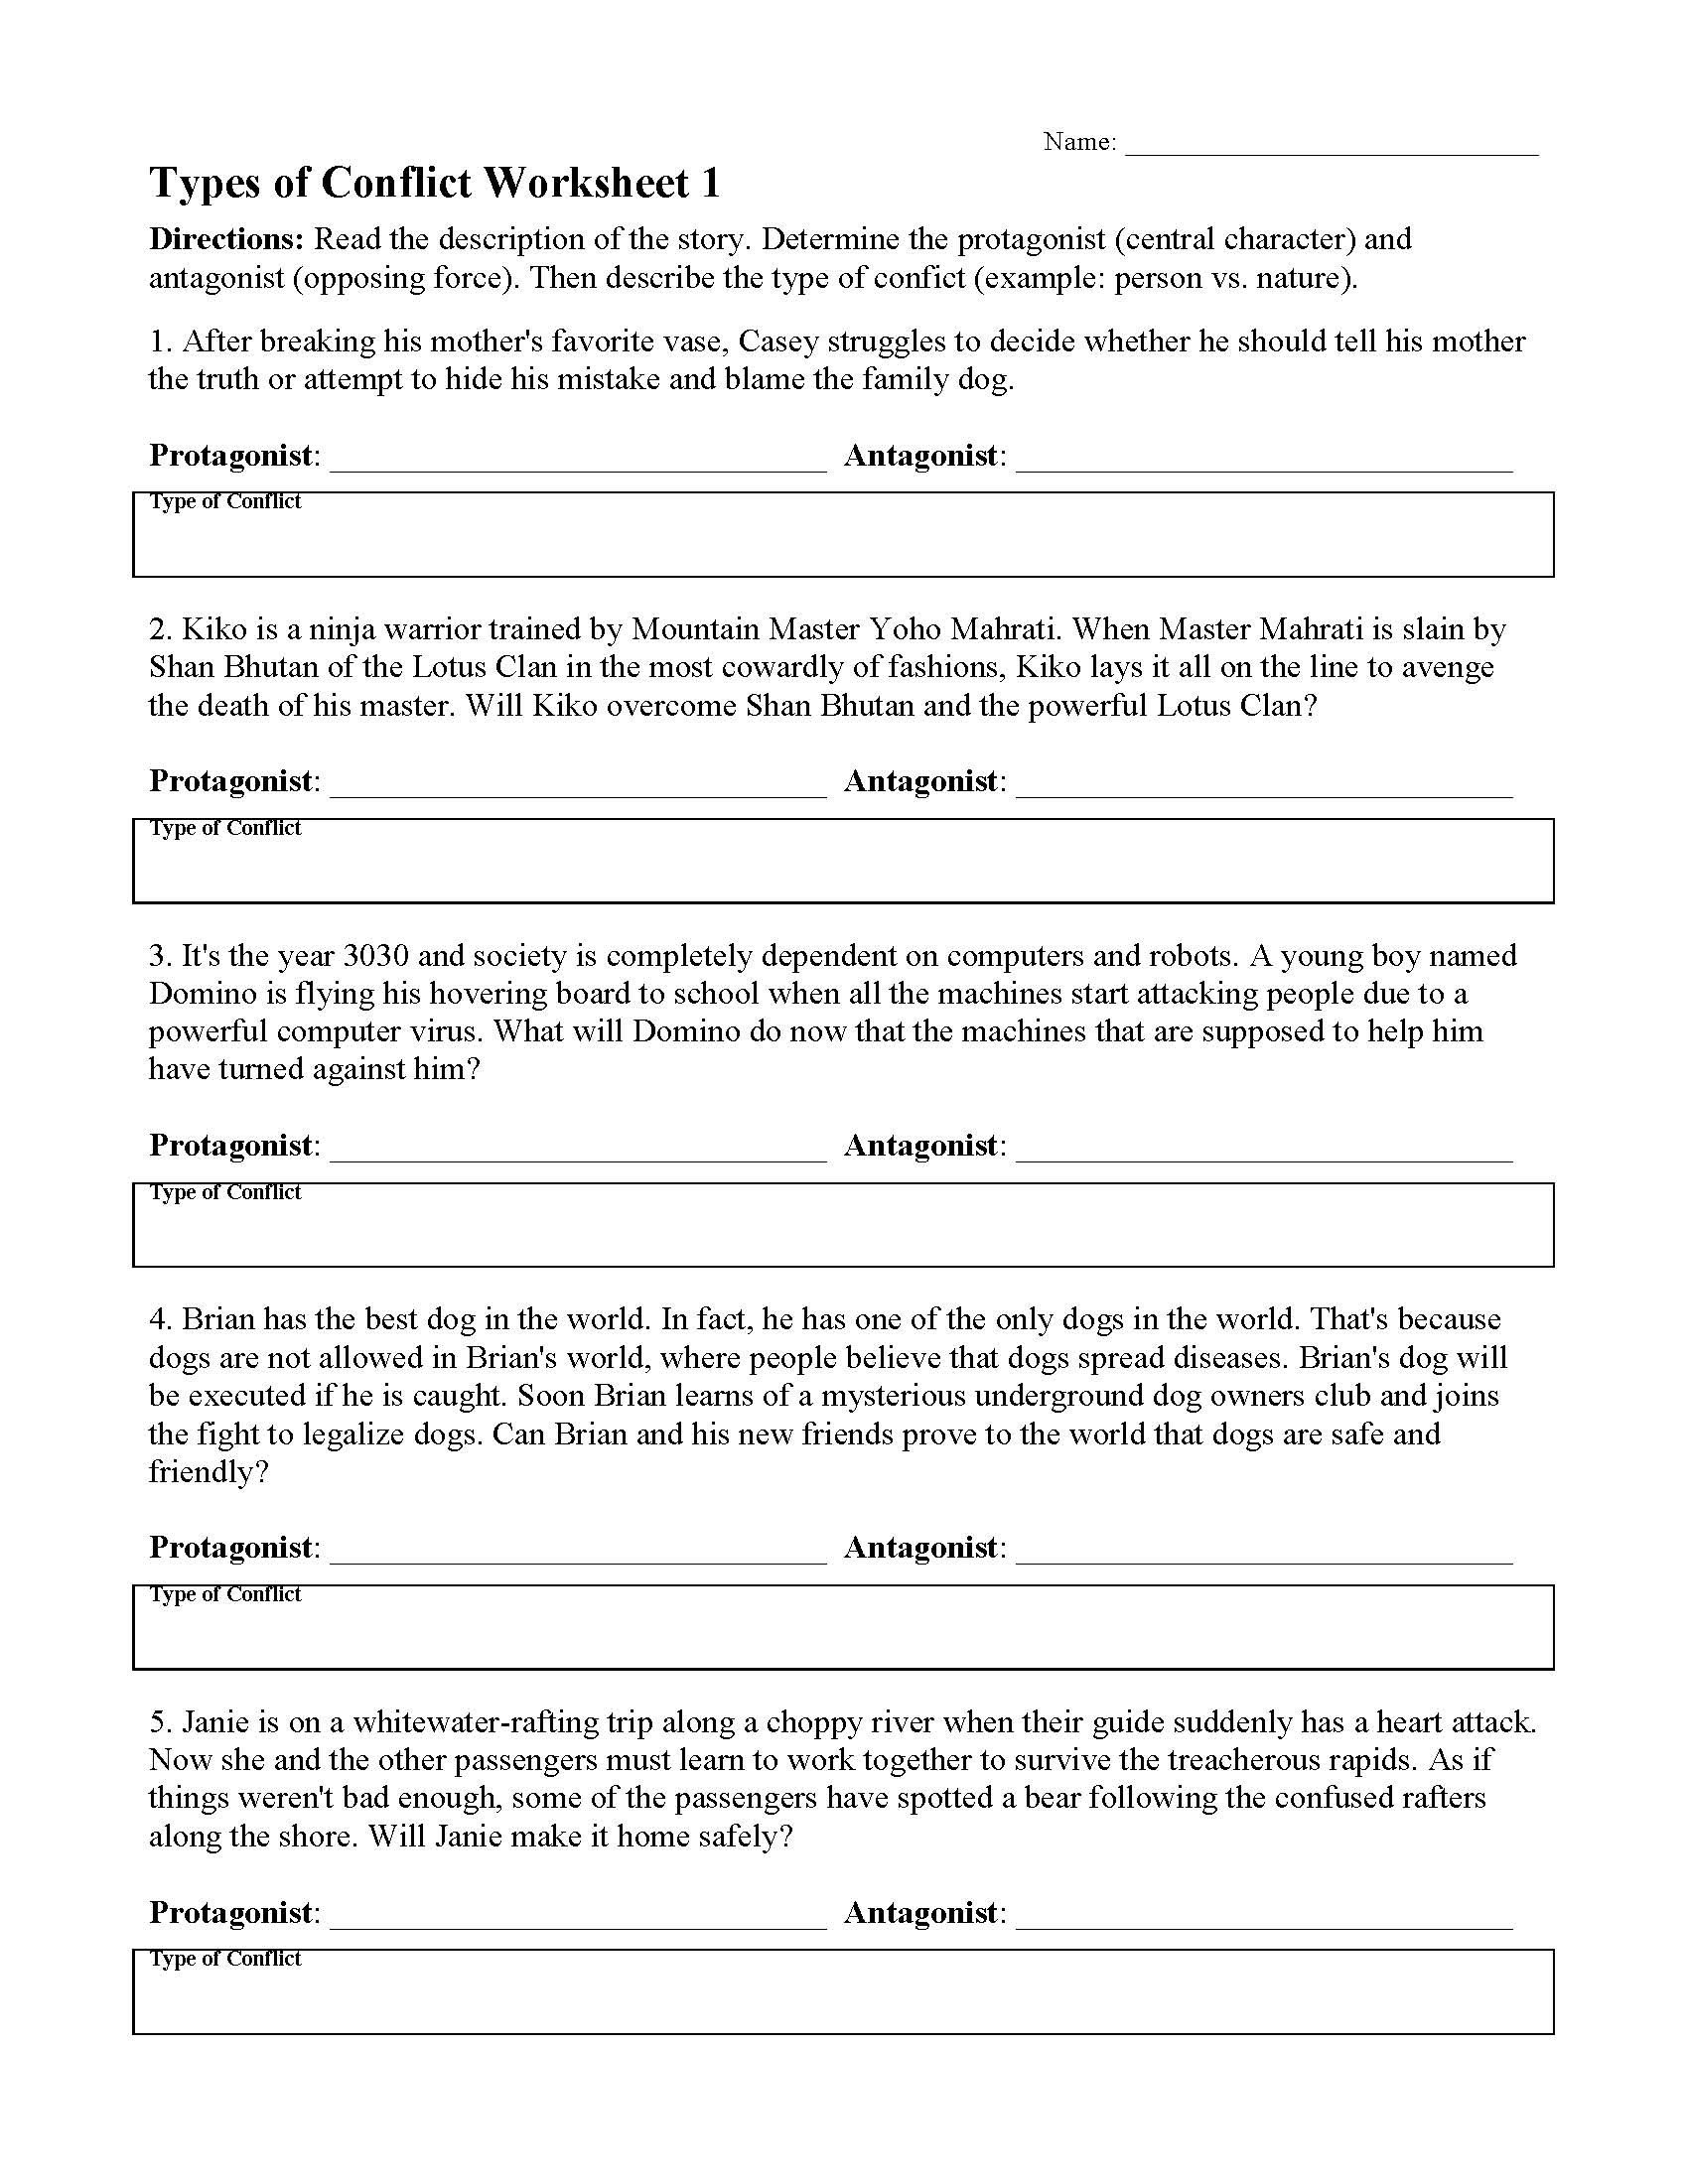 types of conflict worksheet 01 01